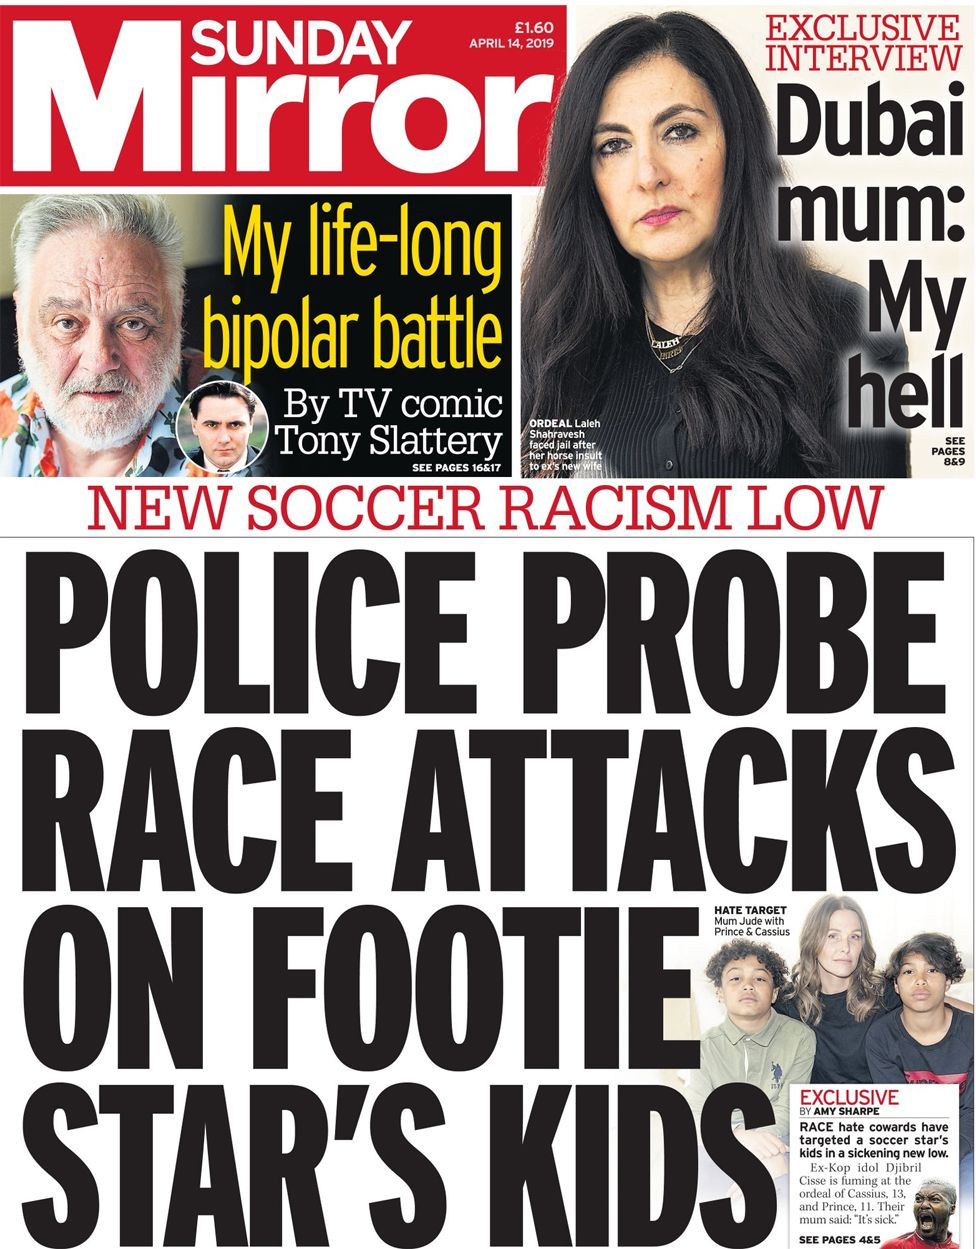 Sunday Mirror front page, 14/4/19